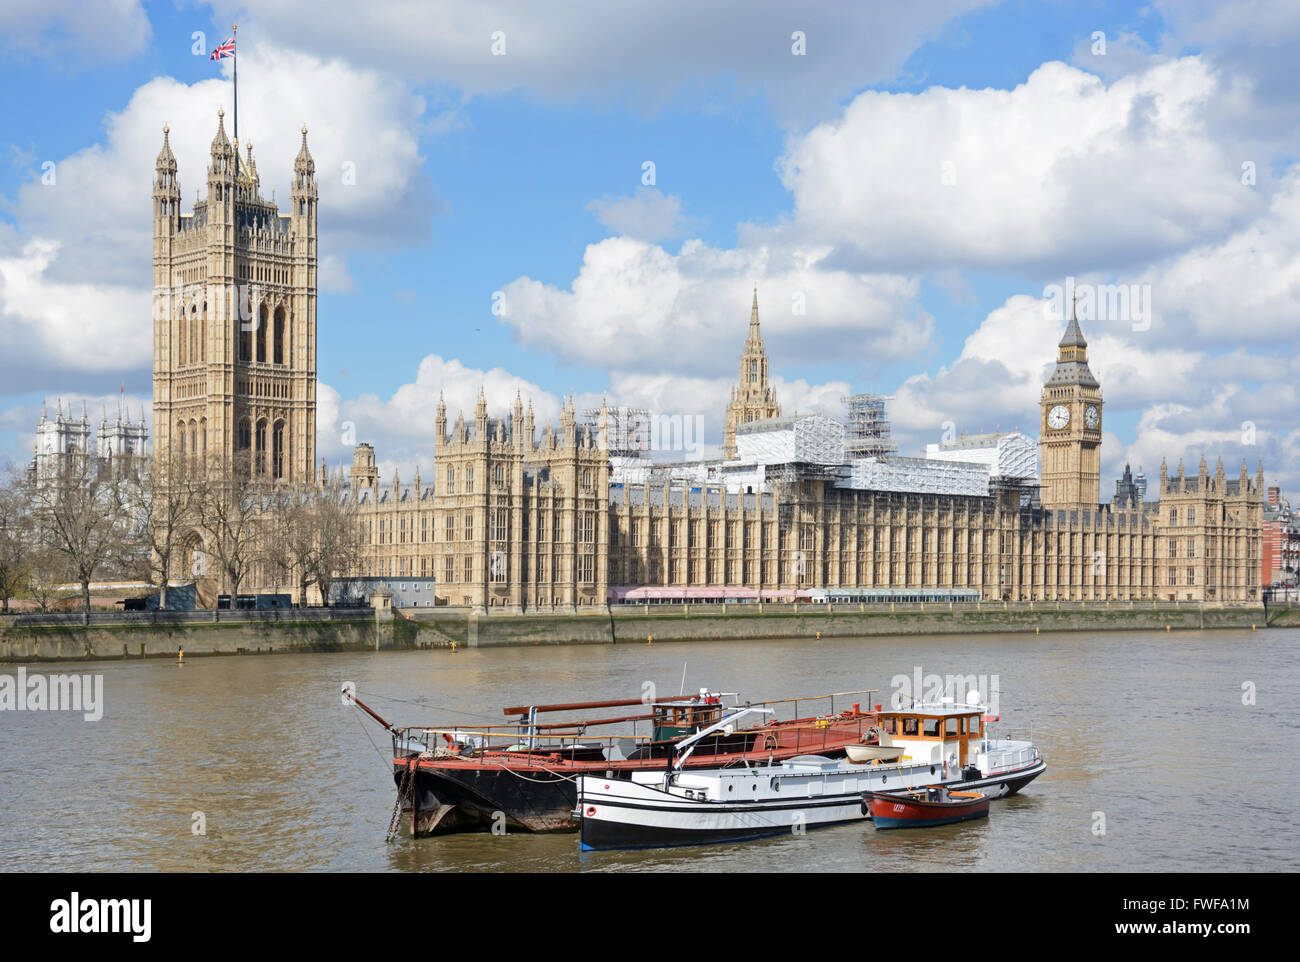 Houses of Parliament, under renovation, London. Stock Photo